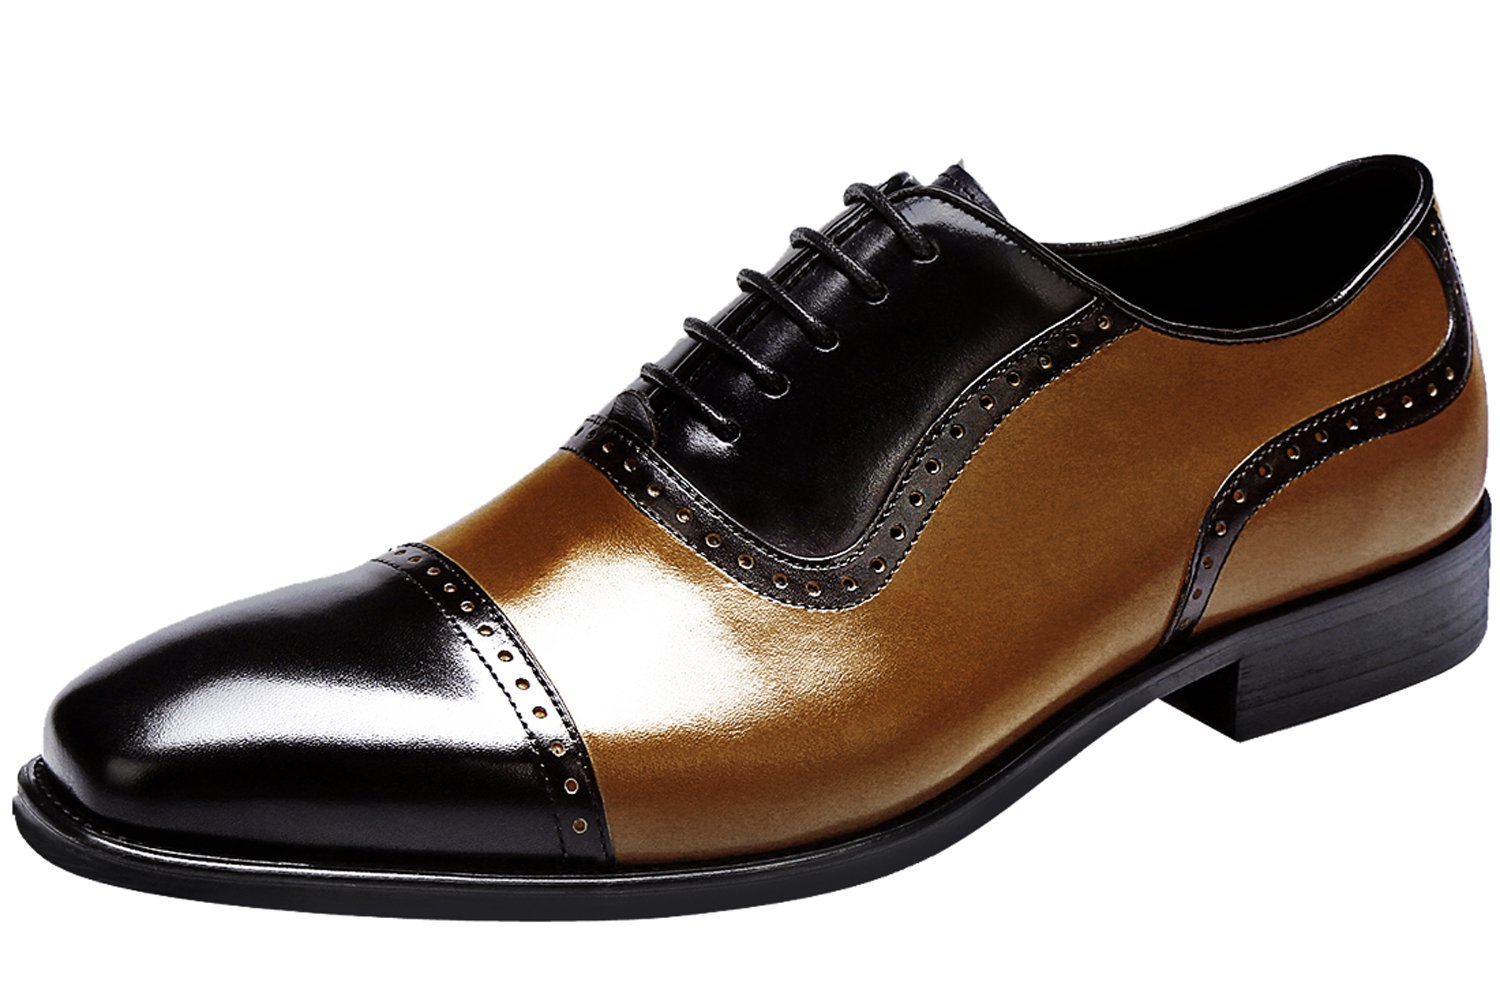 Santimon Dress Shoes for Men Captoe Leather Splice Two Color Handcrafted Black and Tan Oxfords by 9 D(M) US